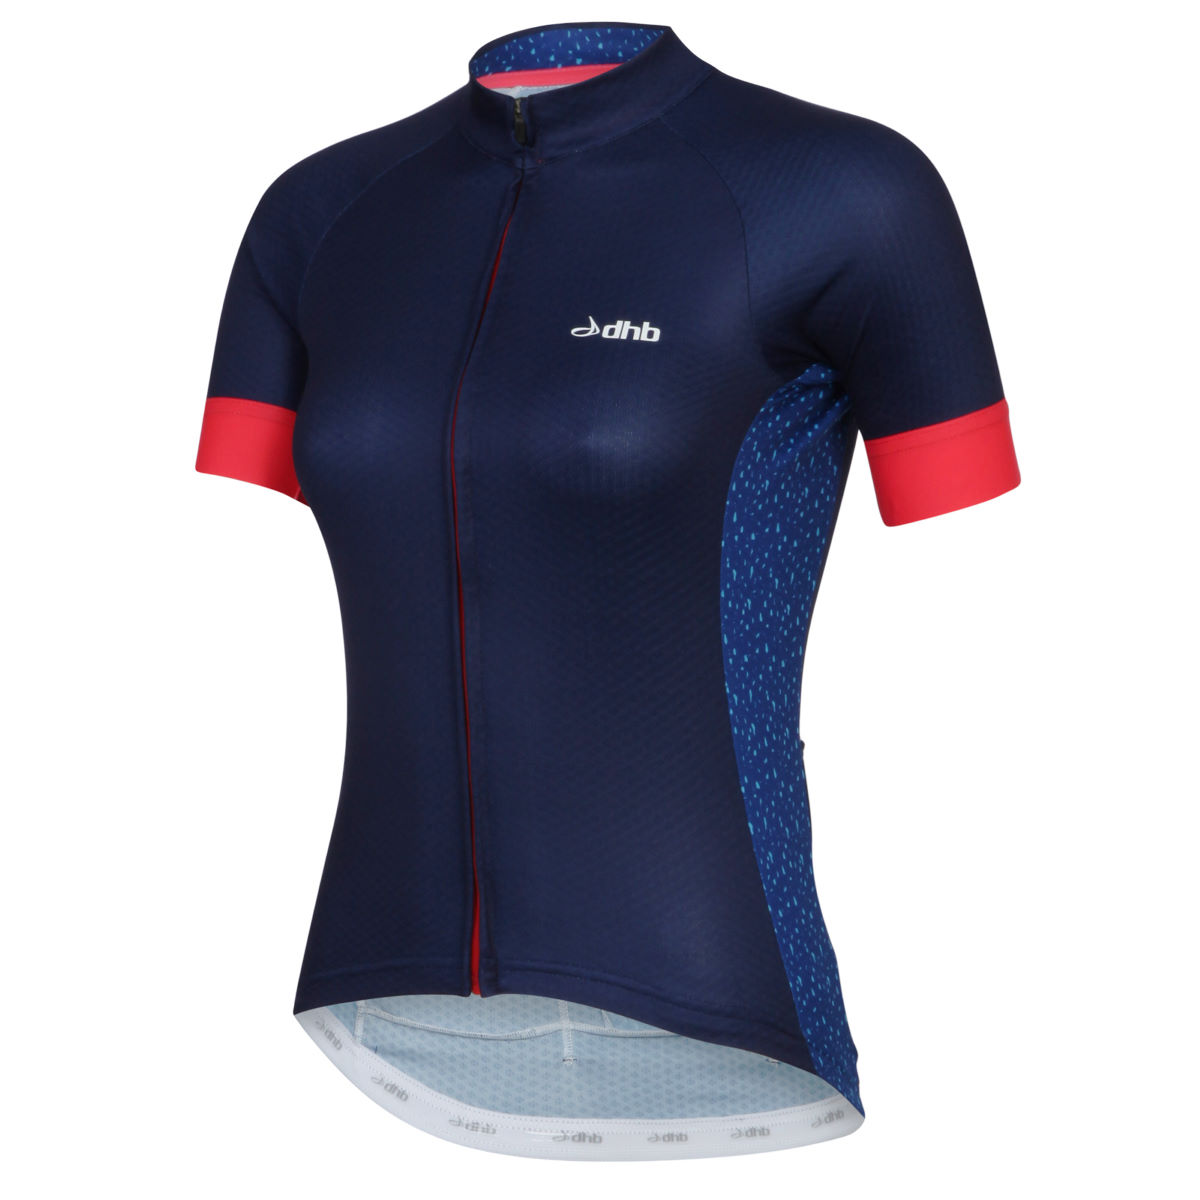 Maillot Femme dhb Aeron (manches courtes) - 10 UK Navy/Red/Print